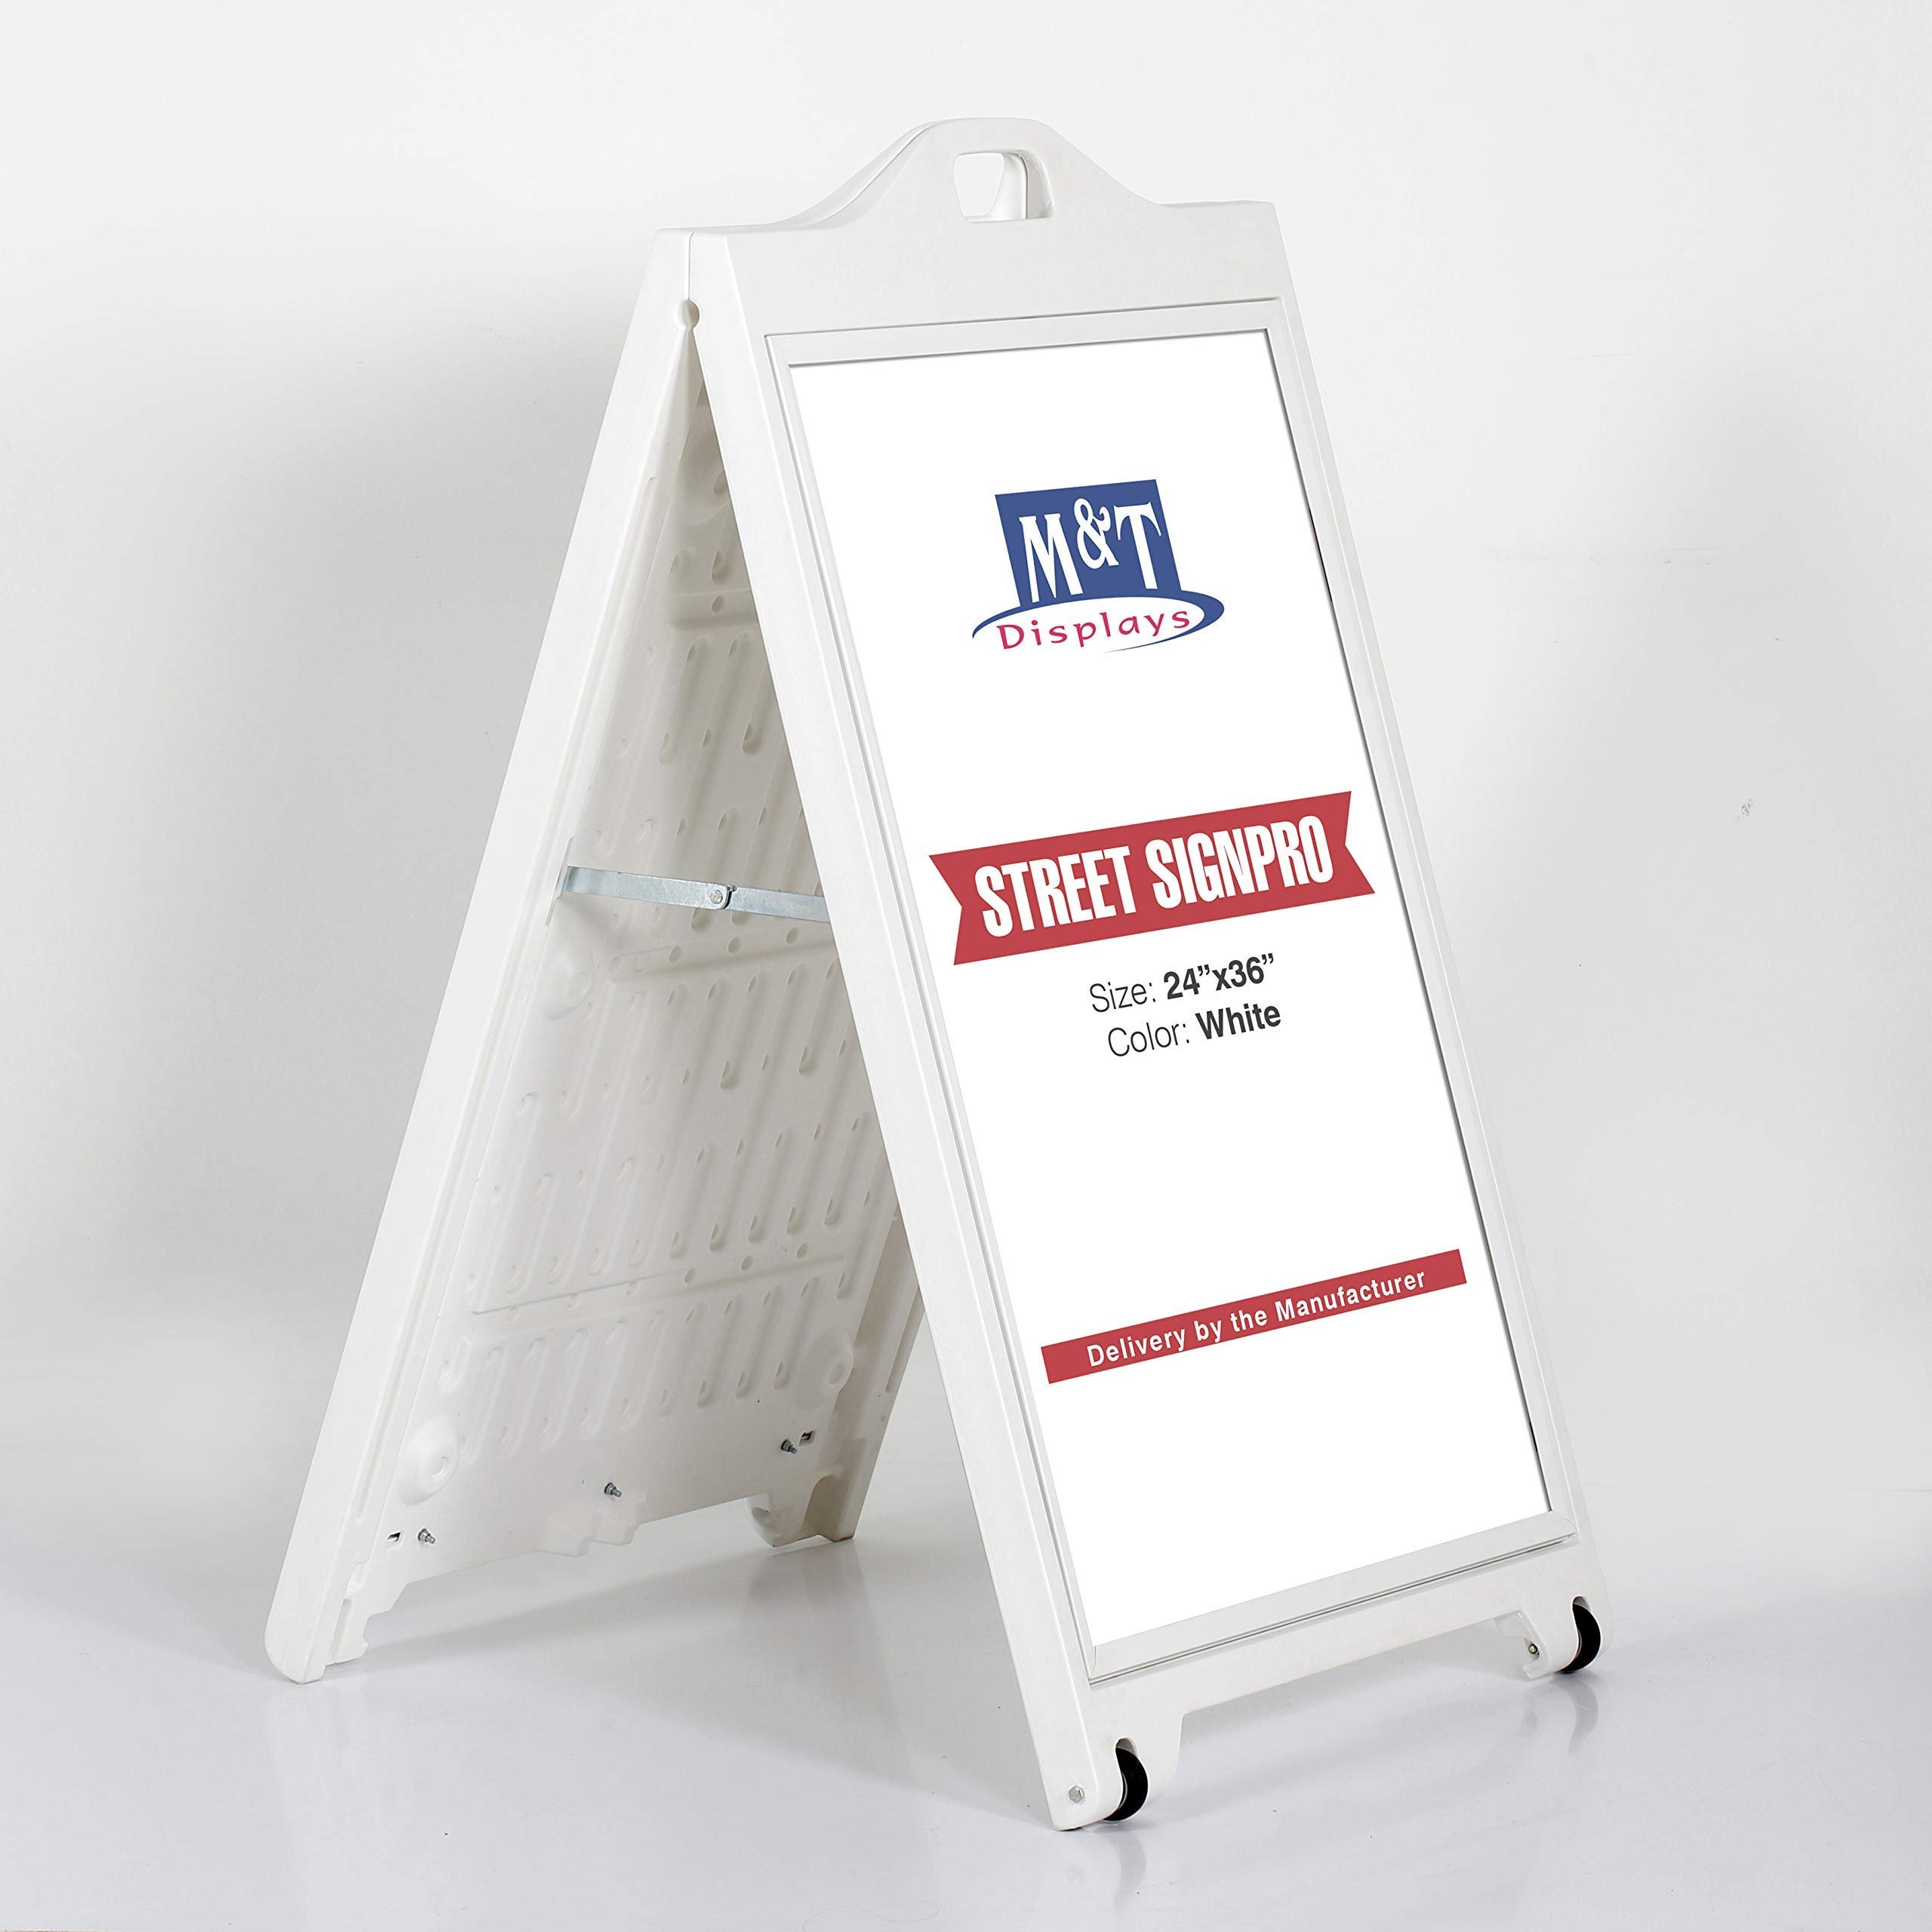 Street SignPro Poster with Protective Cover, A-Frame Sidewalk Curb Sign, Folding Portable Double Sided Advertising Sandwich Board Display (24x36 with Lens, White)